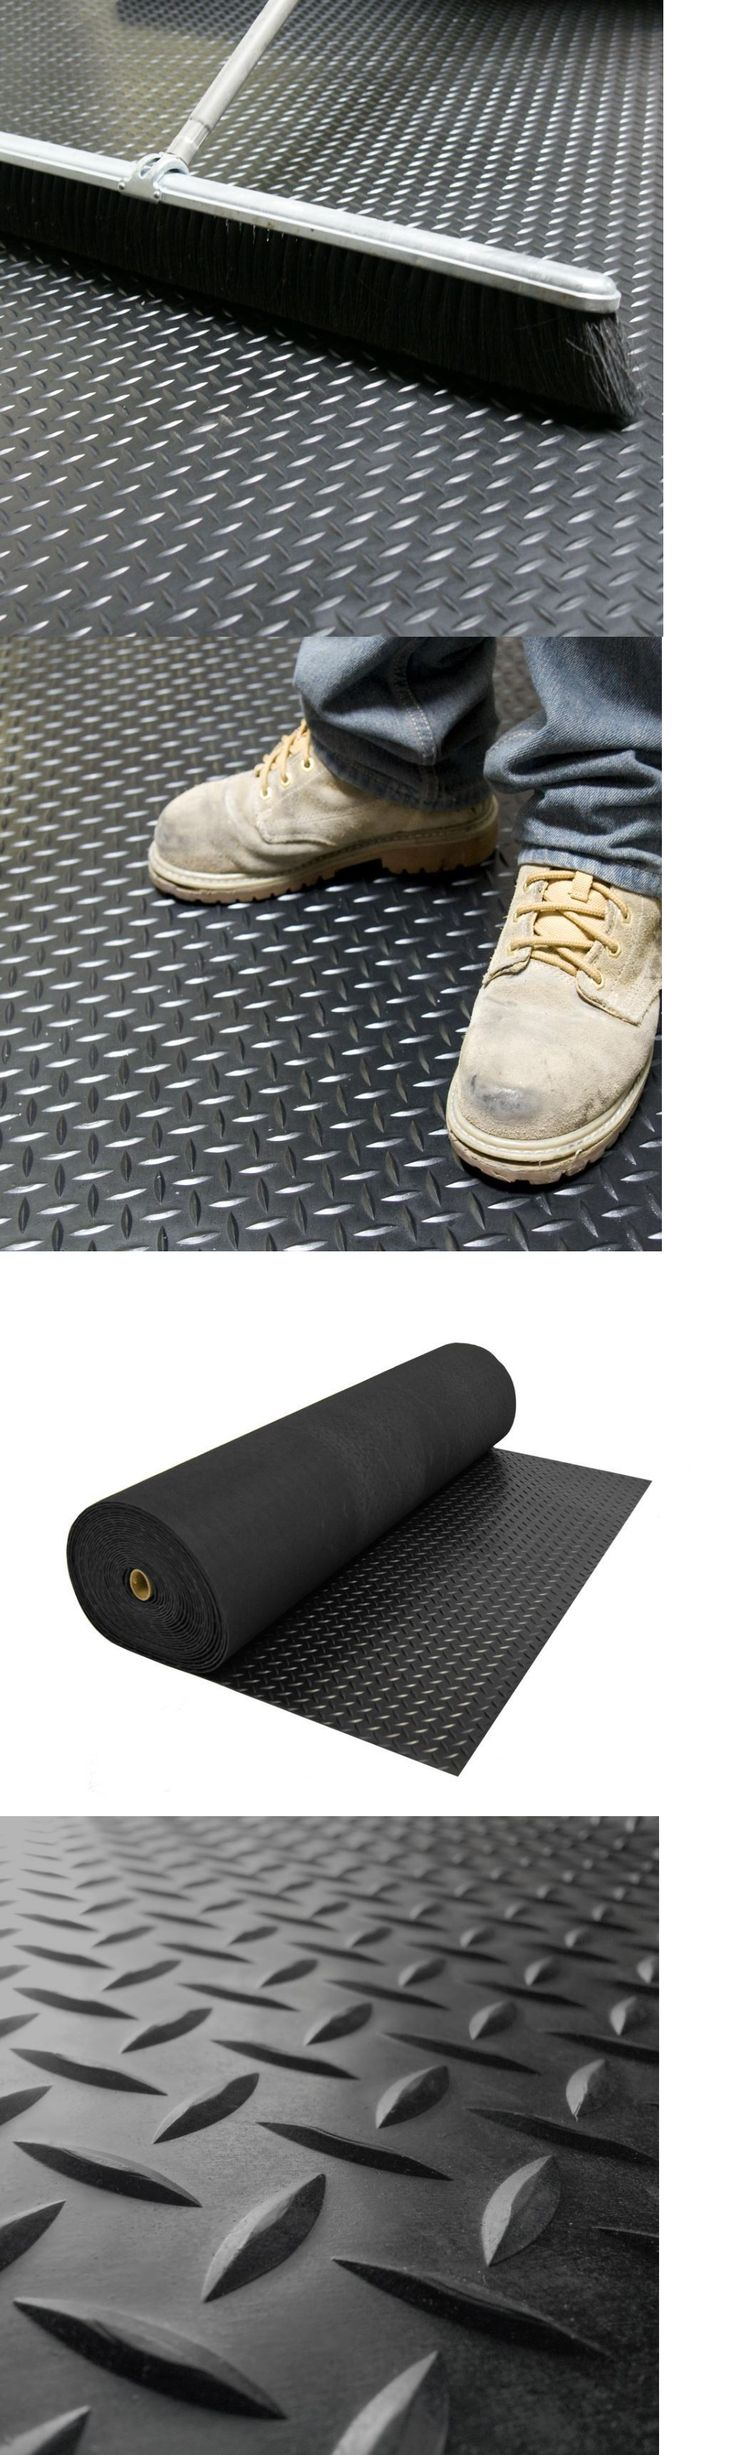 Equipment Mats and Flooring 179806: Garage Floor Protector Rubber Flooring For Home Gym Black Diamond Plate 15Ft. -> BUY IT NOW ONLY: $126.99 on eBay!